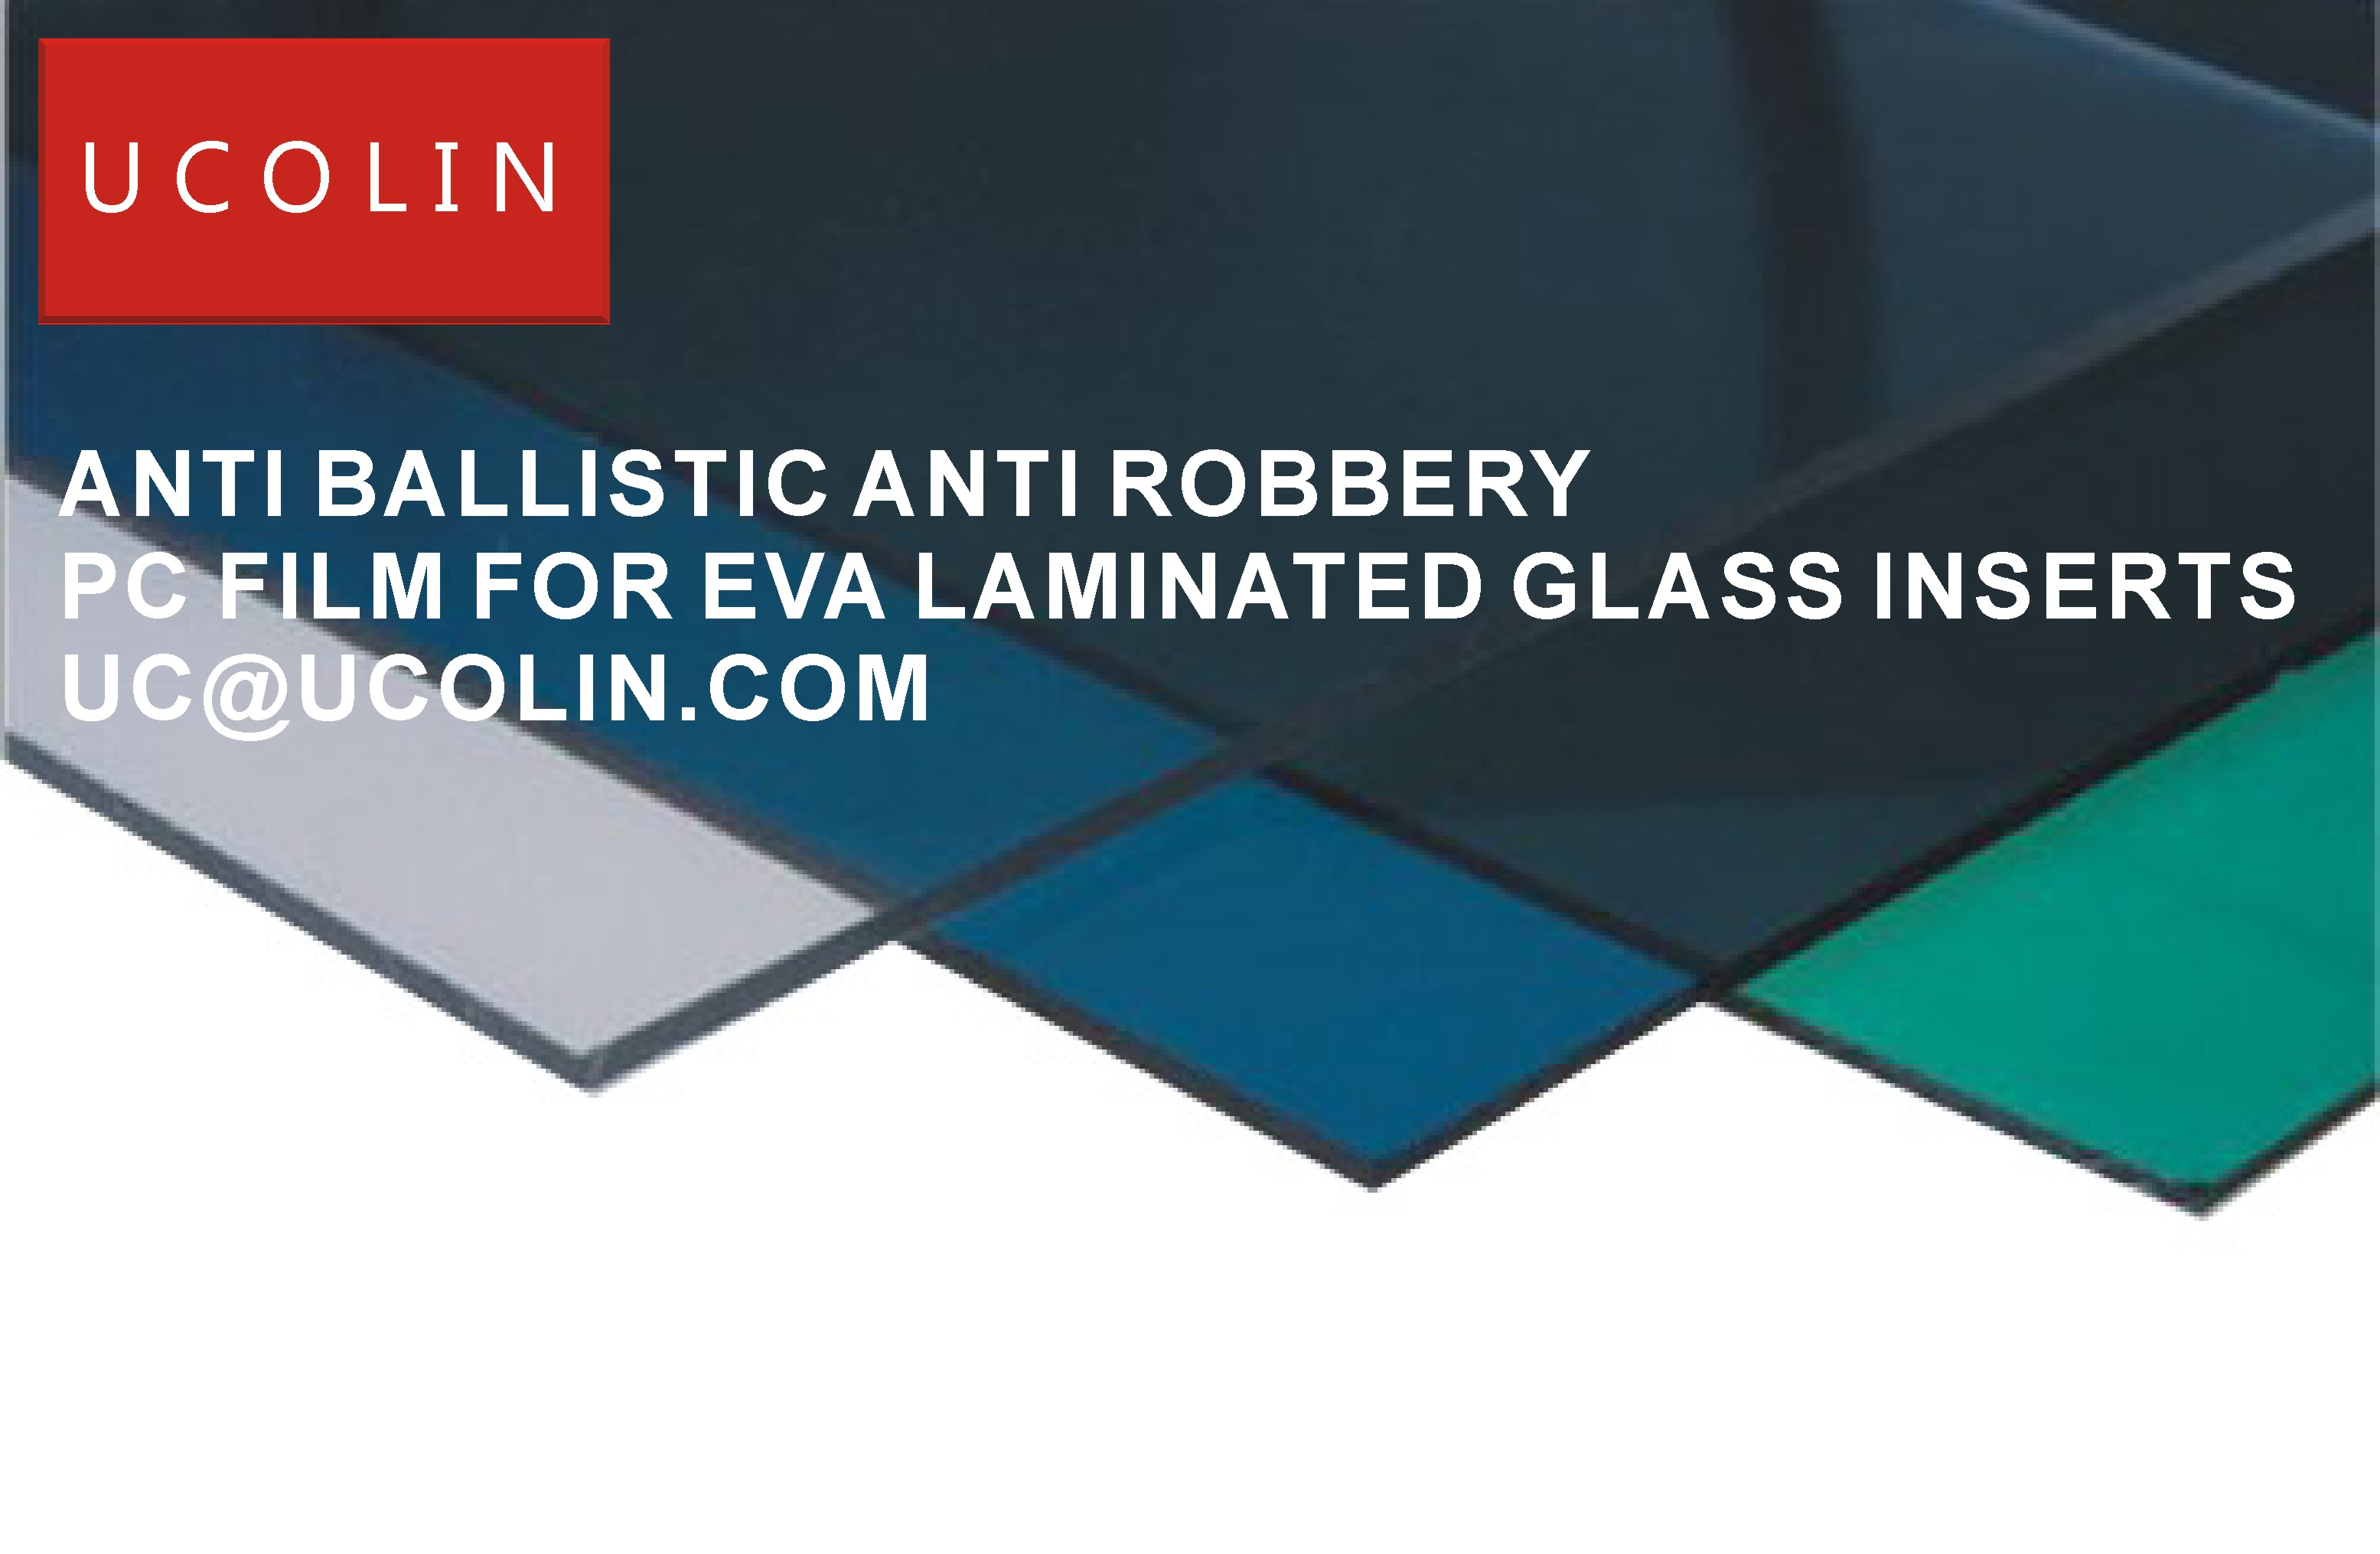 05 ANTI BALLISTIC ANTI ROBBERY PC FILM FOR EVA LAMINATED GLASS INERTS